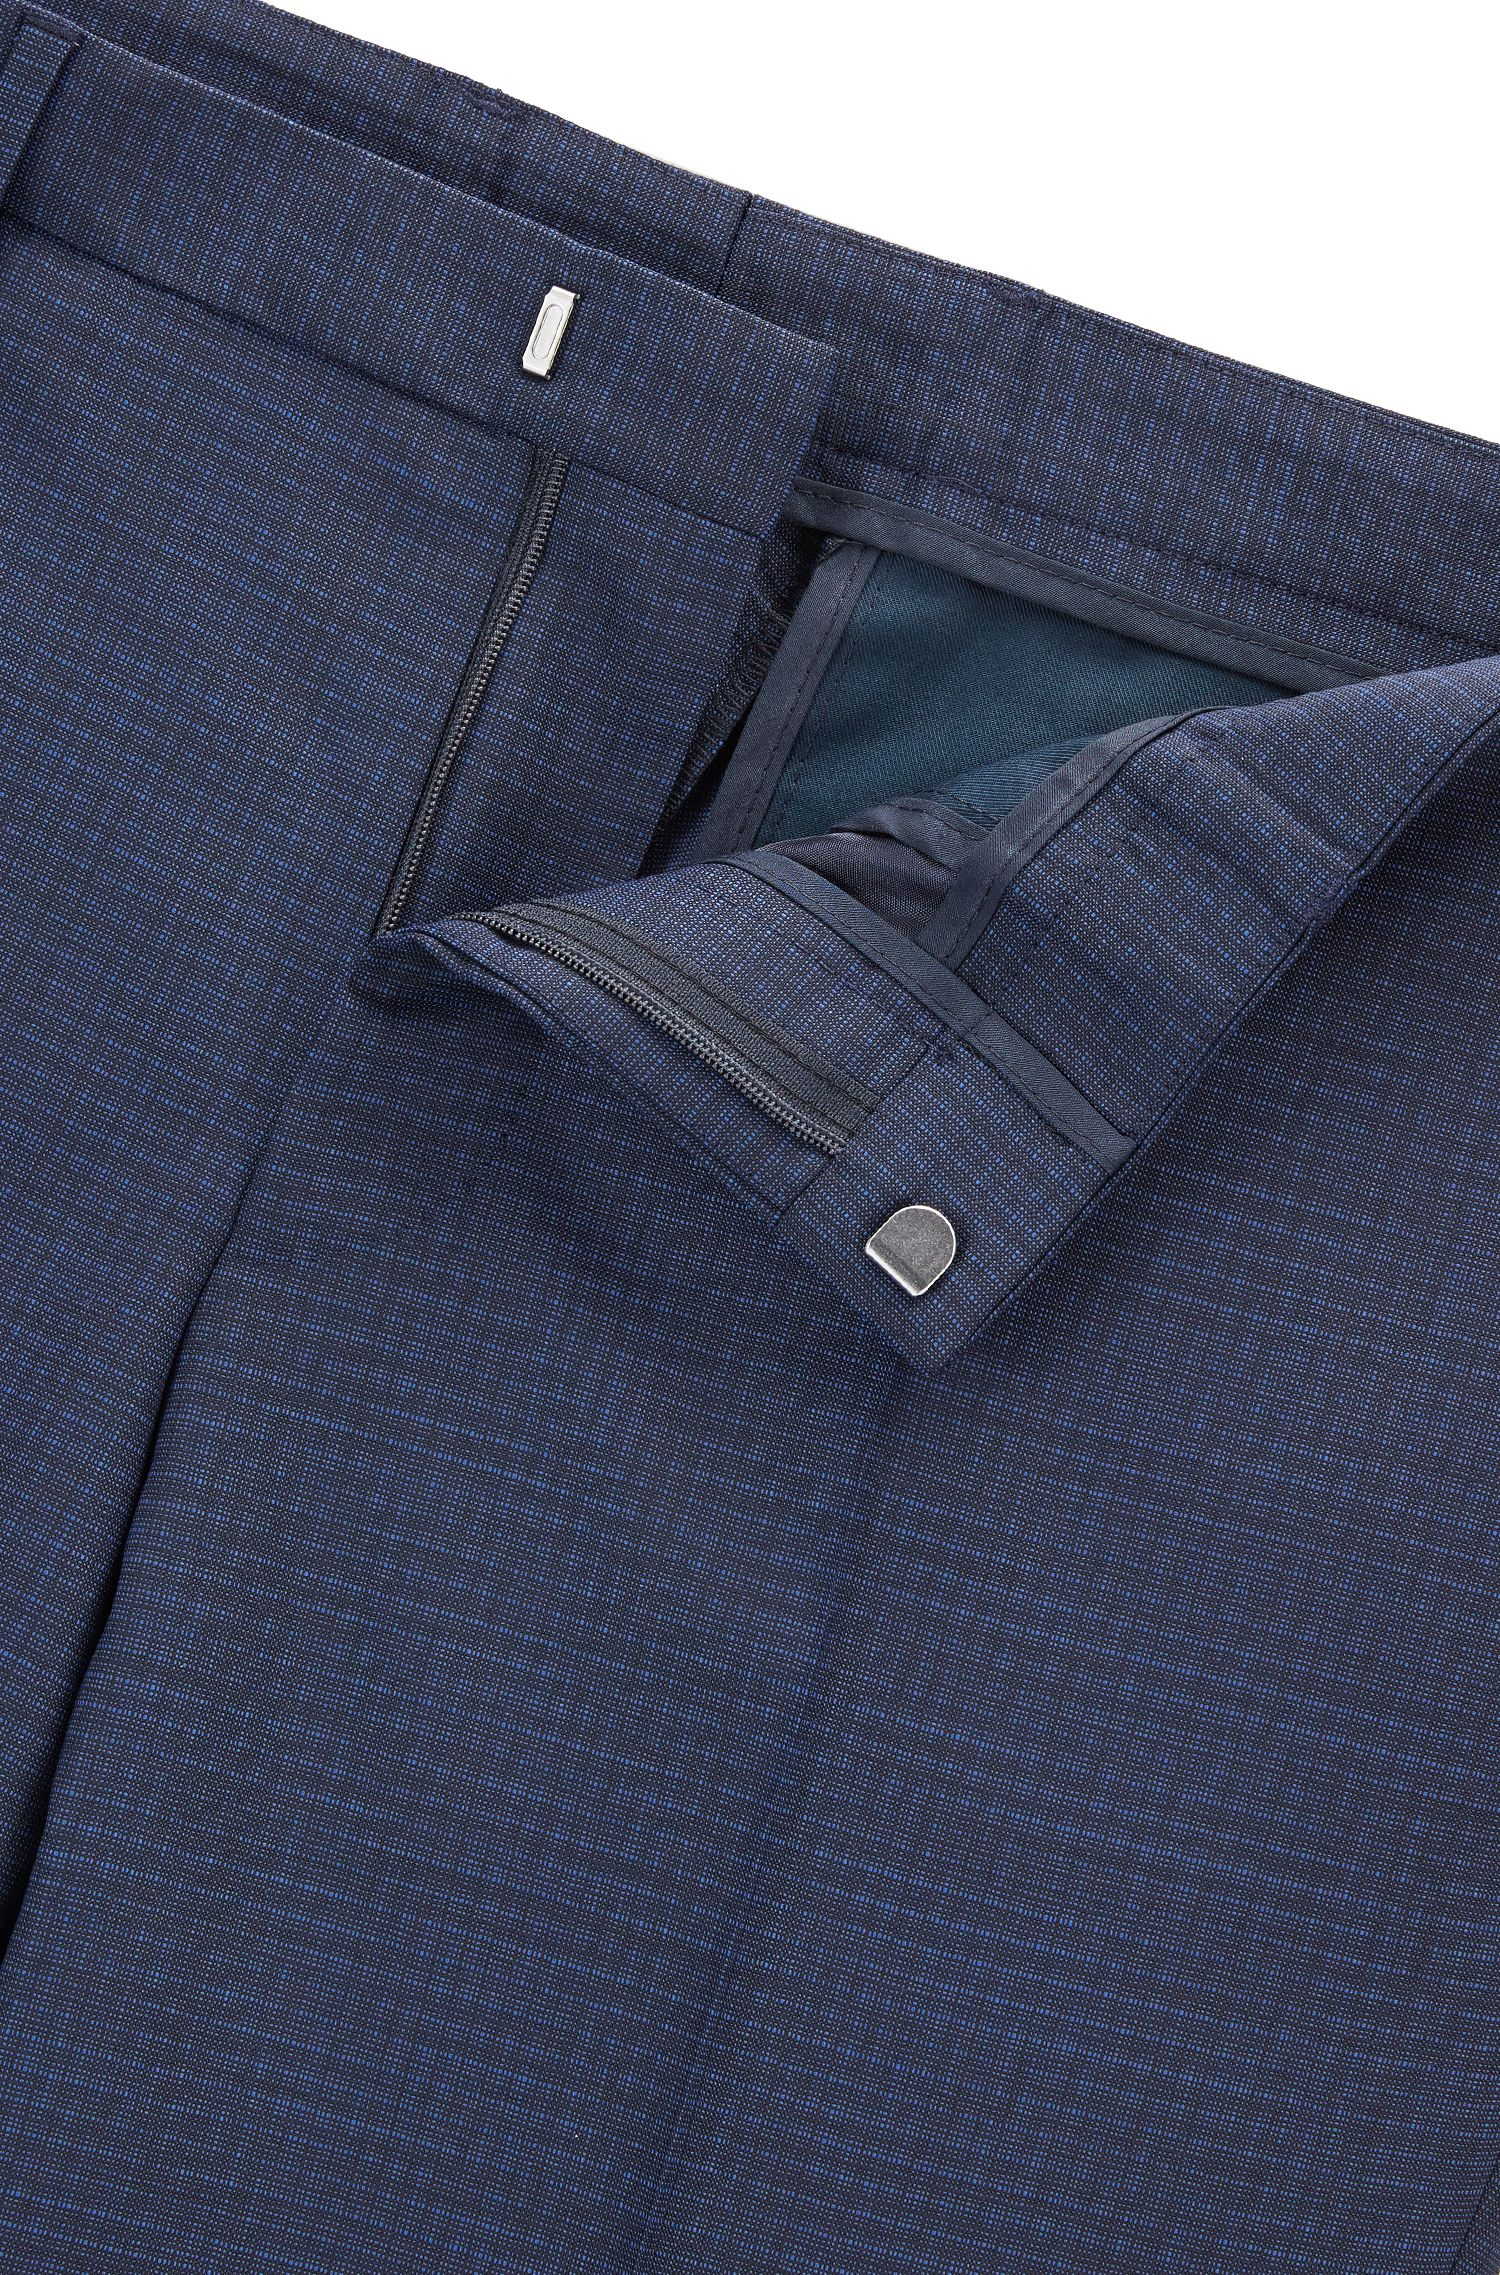 Checked Virgin Wool Suit, Slim Fit | Novid/Bristow